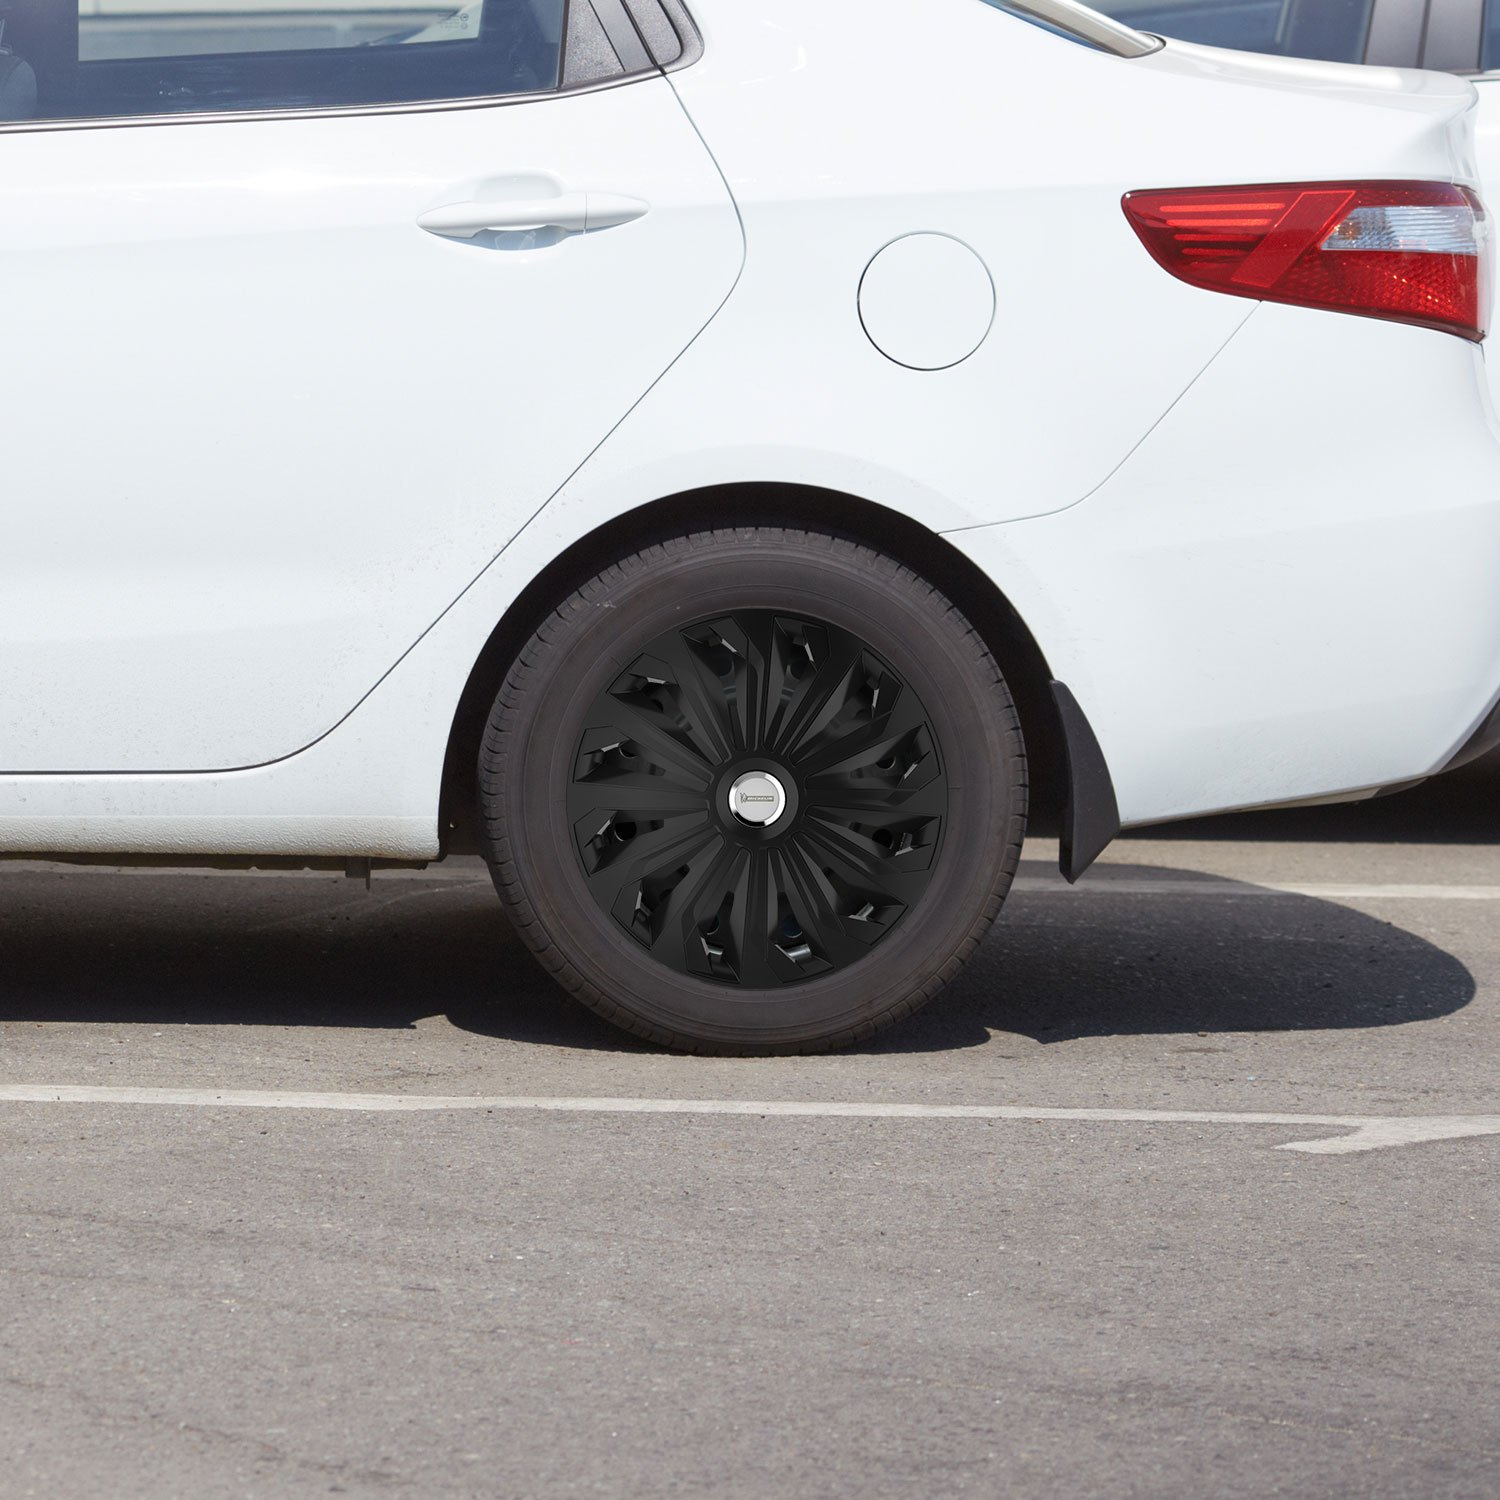 14 inches 35.56 cm black set of 4 Michelin 92009 Wheel trim Fabienne with reflector system N.V.S.